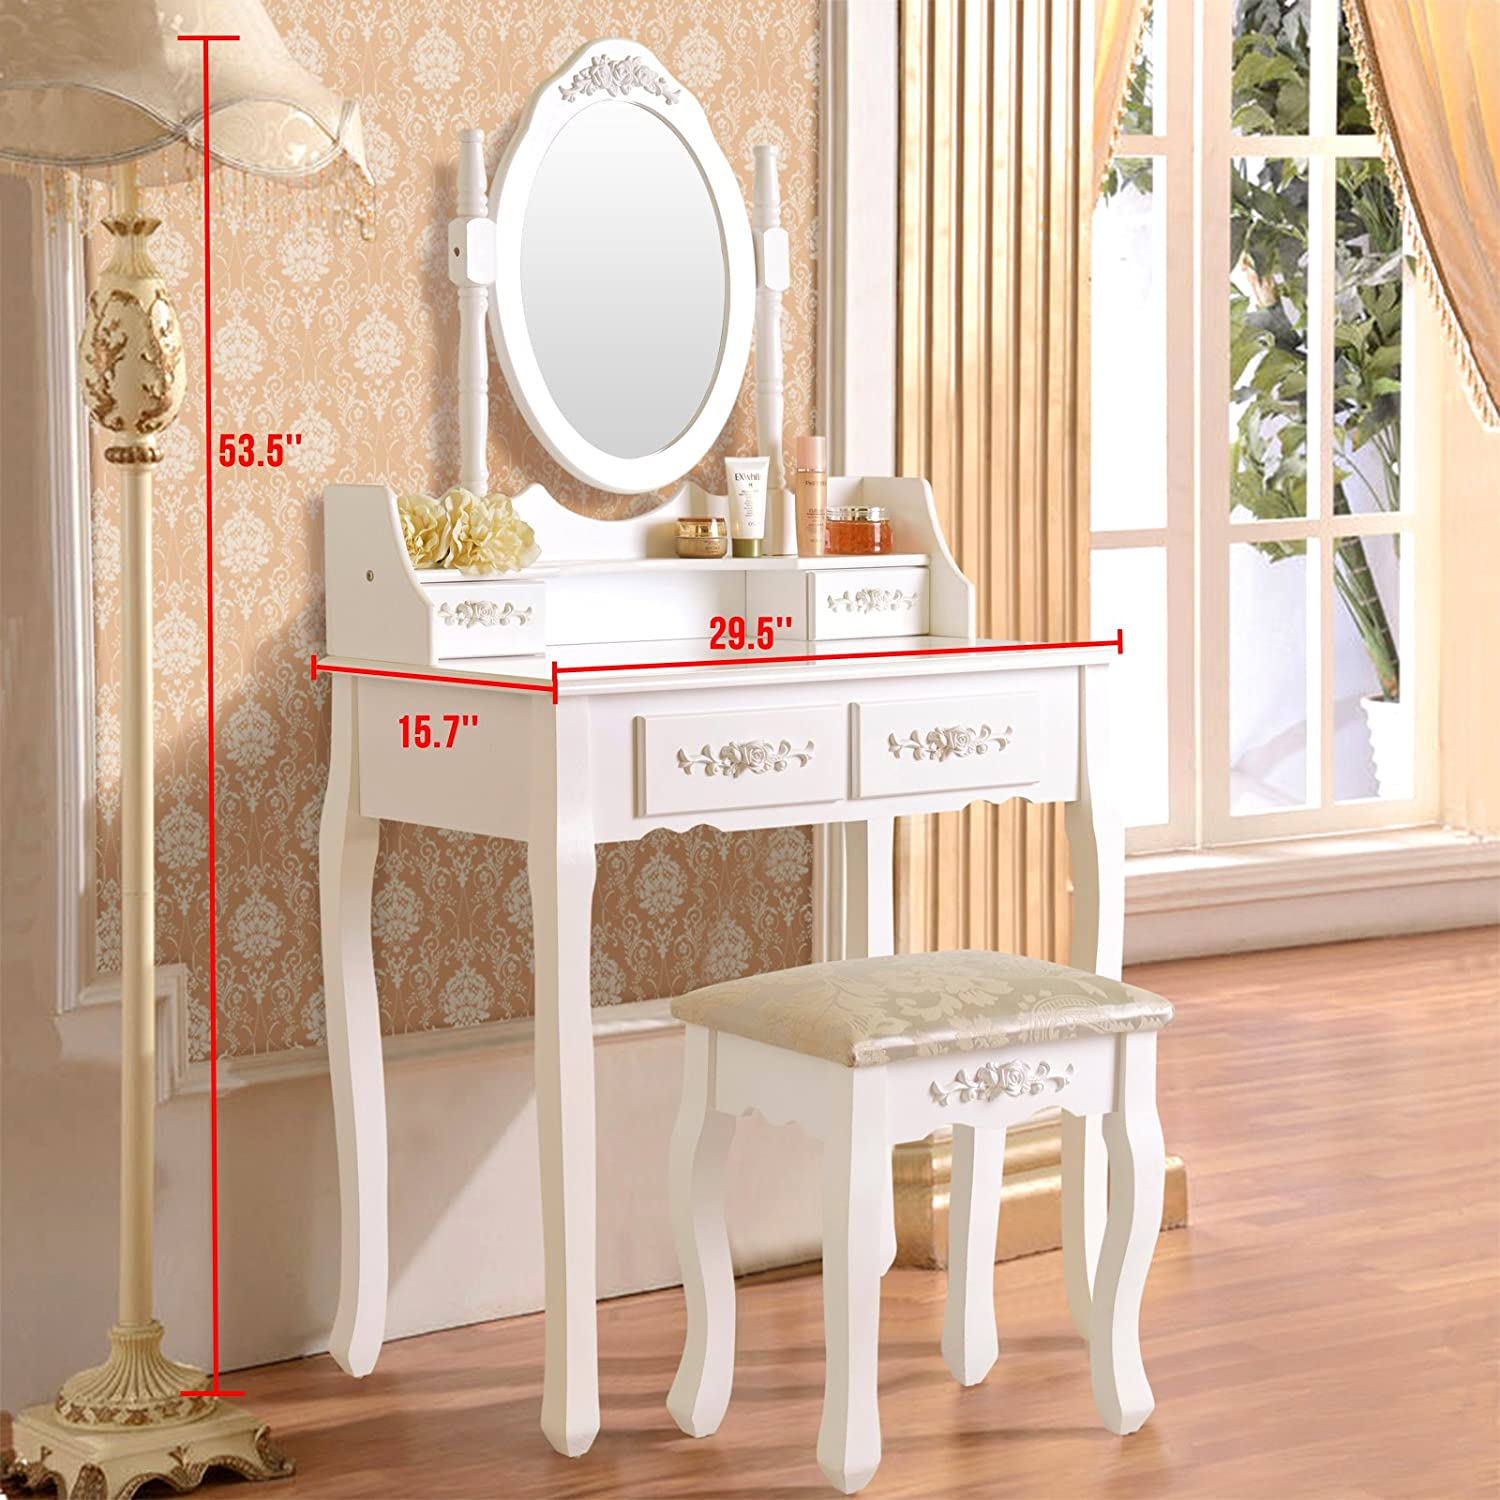 Bedroom furniture dressing table stools - Amazon Com Elegance Vanity Makeup Table Set 4 Strawers Dressing Table With Stool White Kitchen Dining